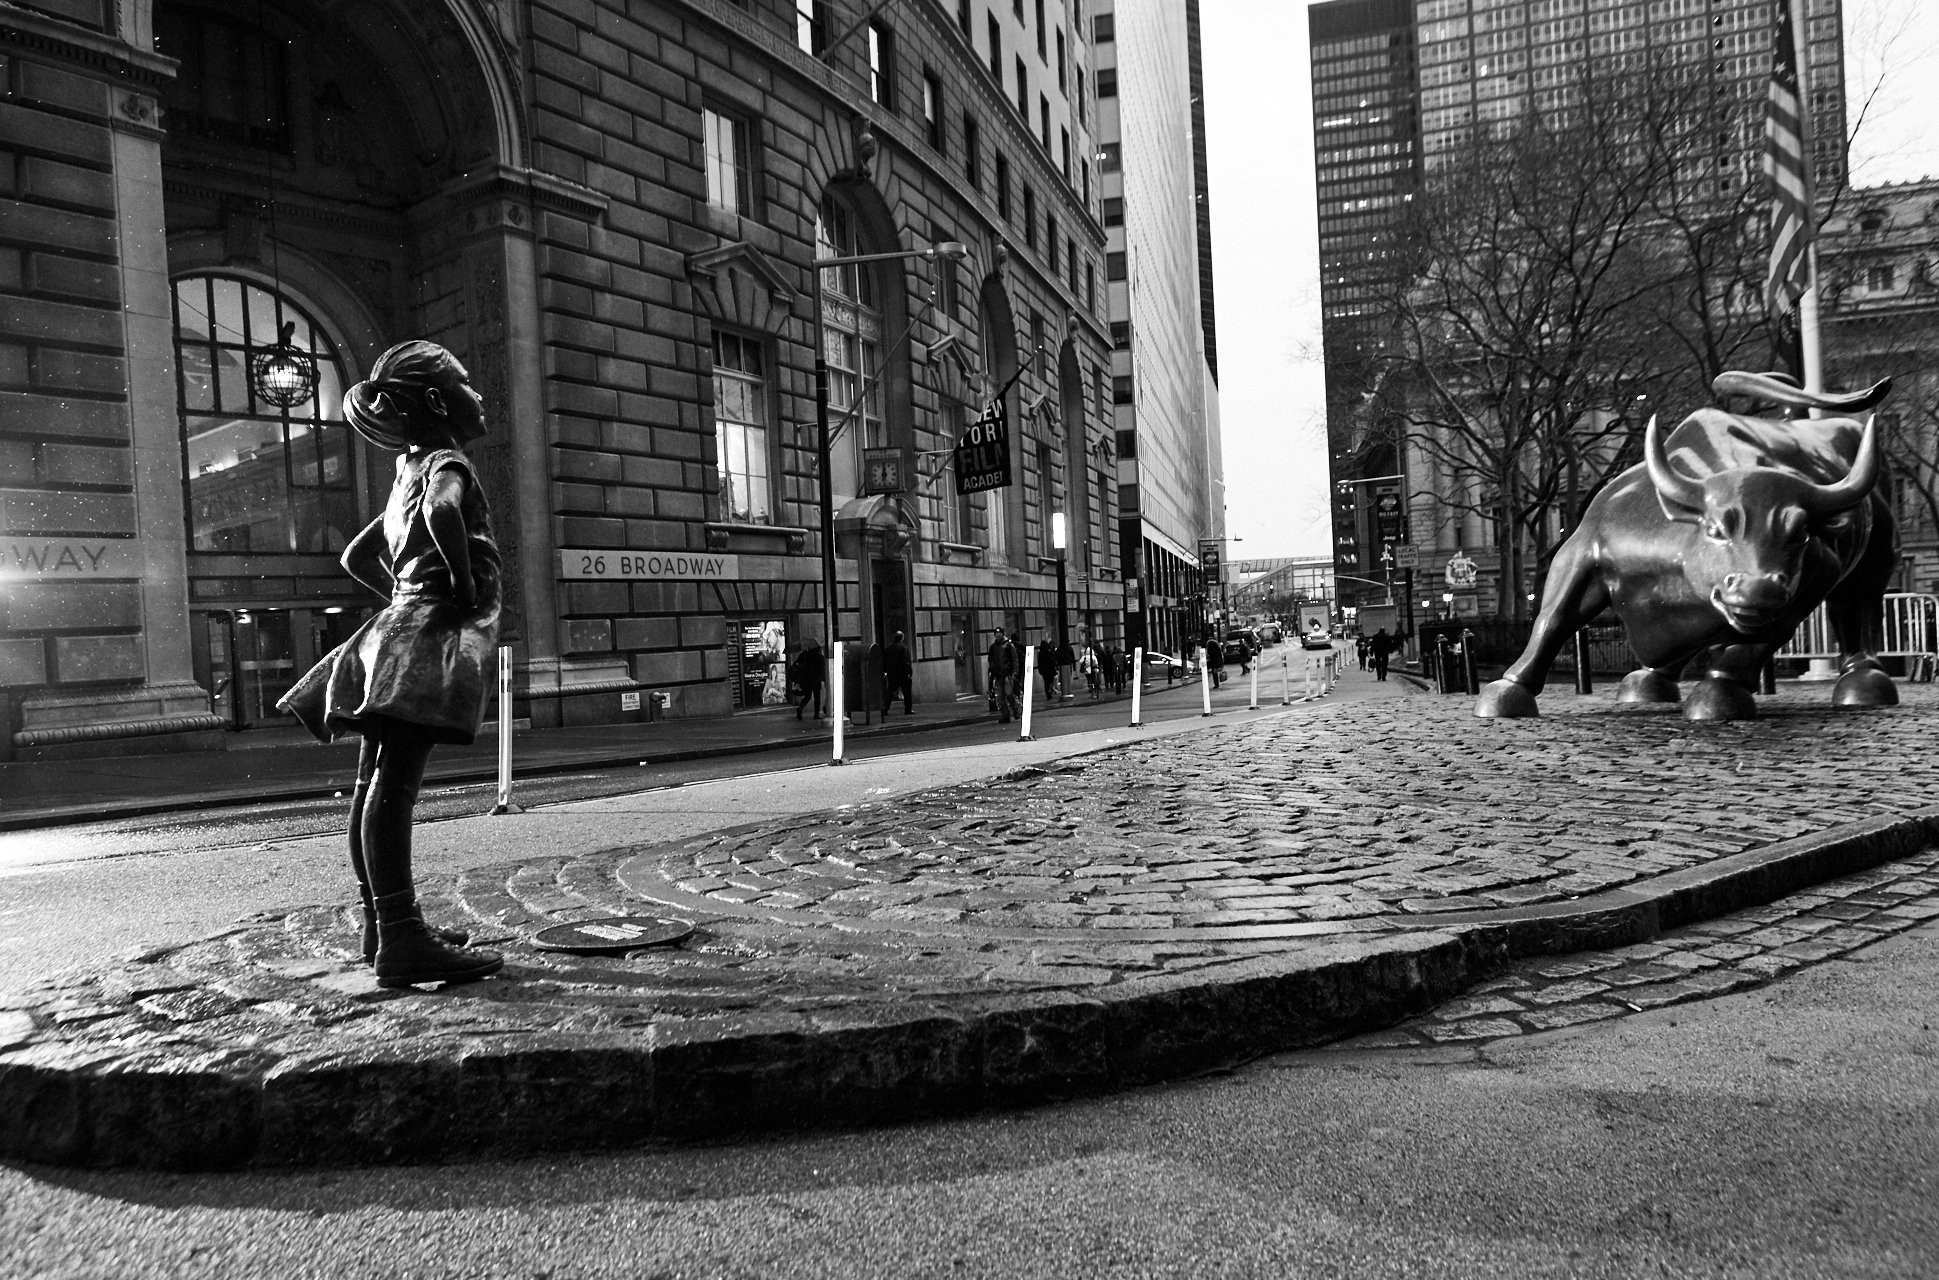 A $2 5 trillion asset manager just put a statue of a defiant girl in